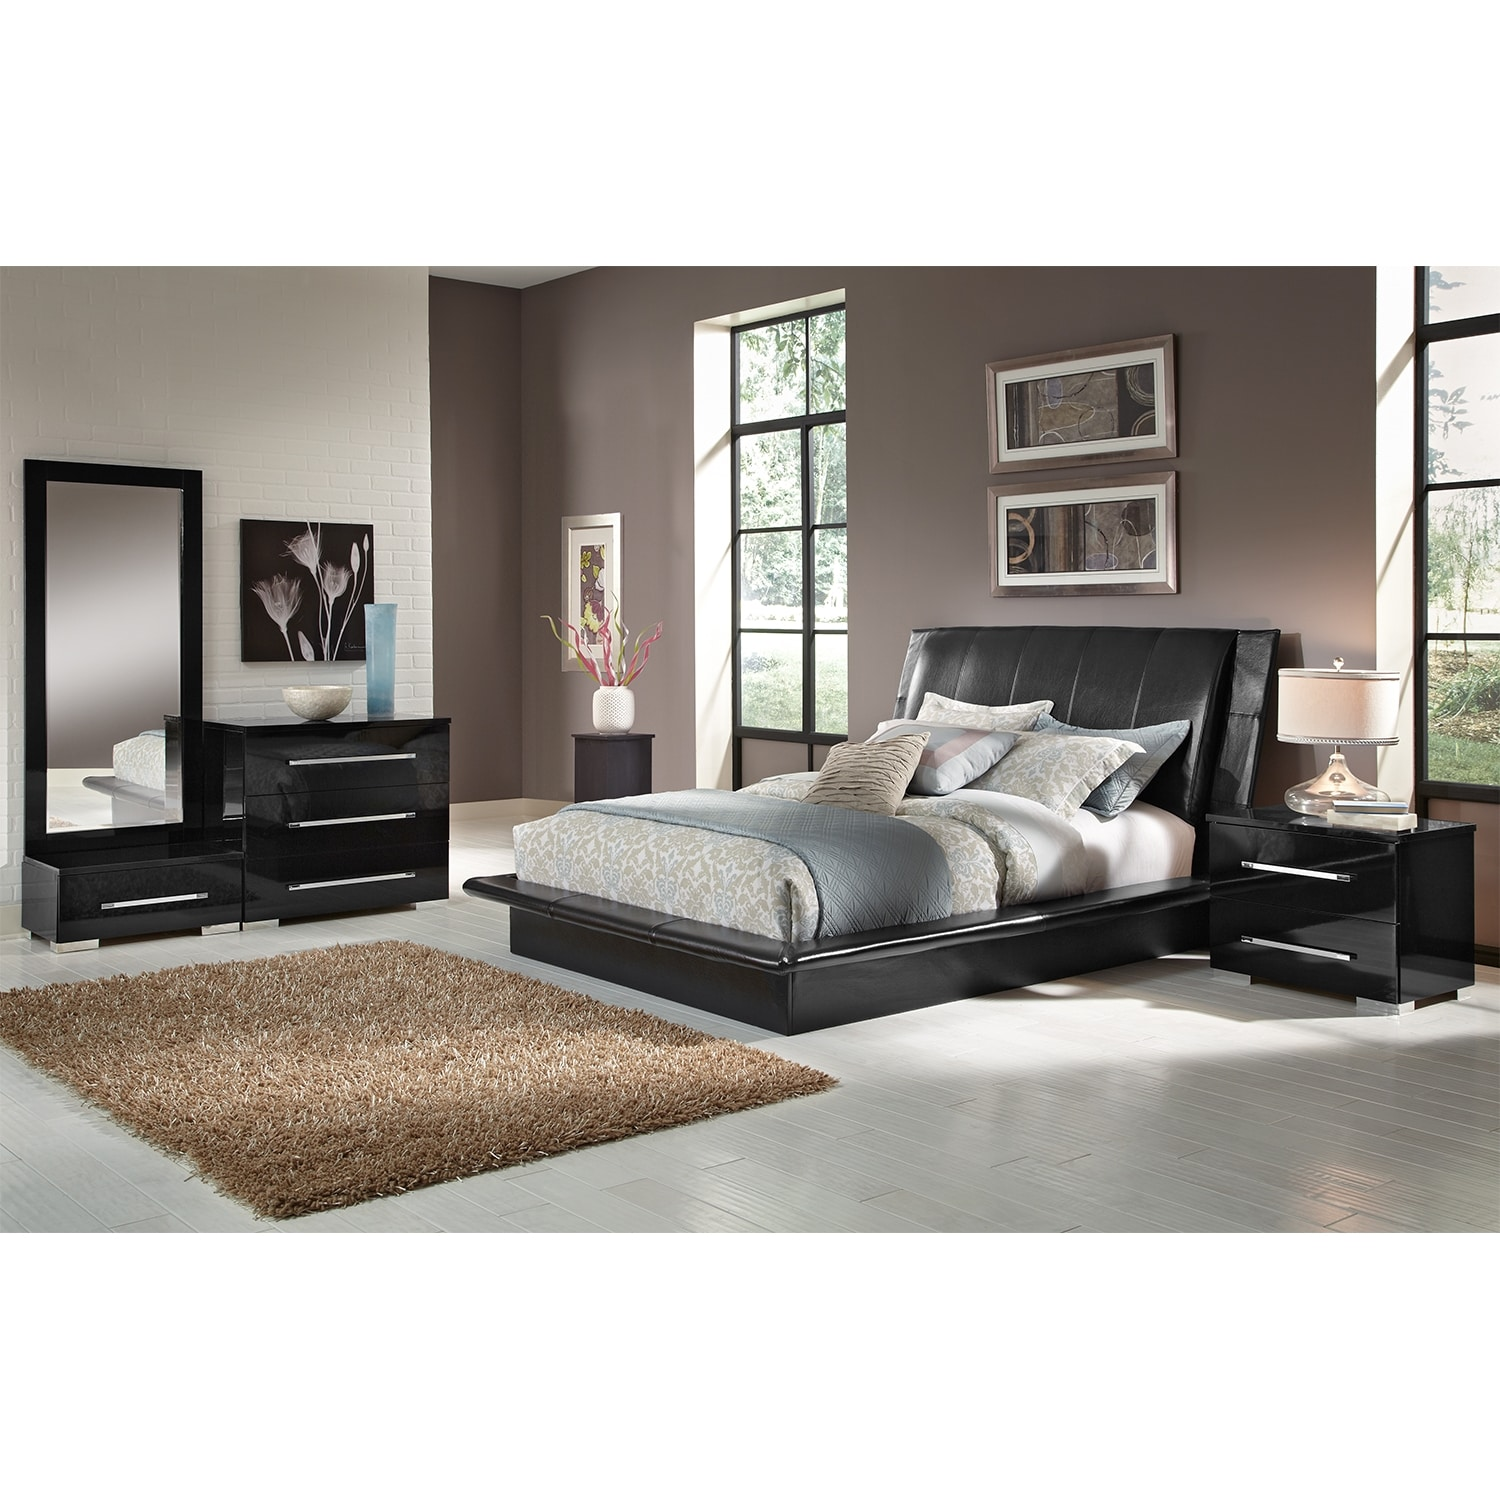 Dimora 6 piece queen upholstered bedroom set black value city furniture - Queen bedroom sets ...